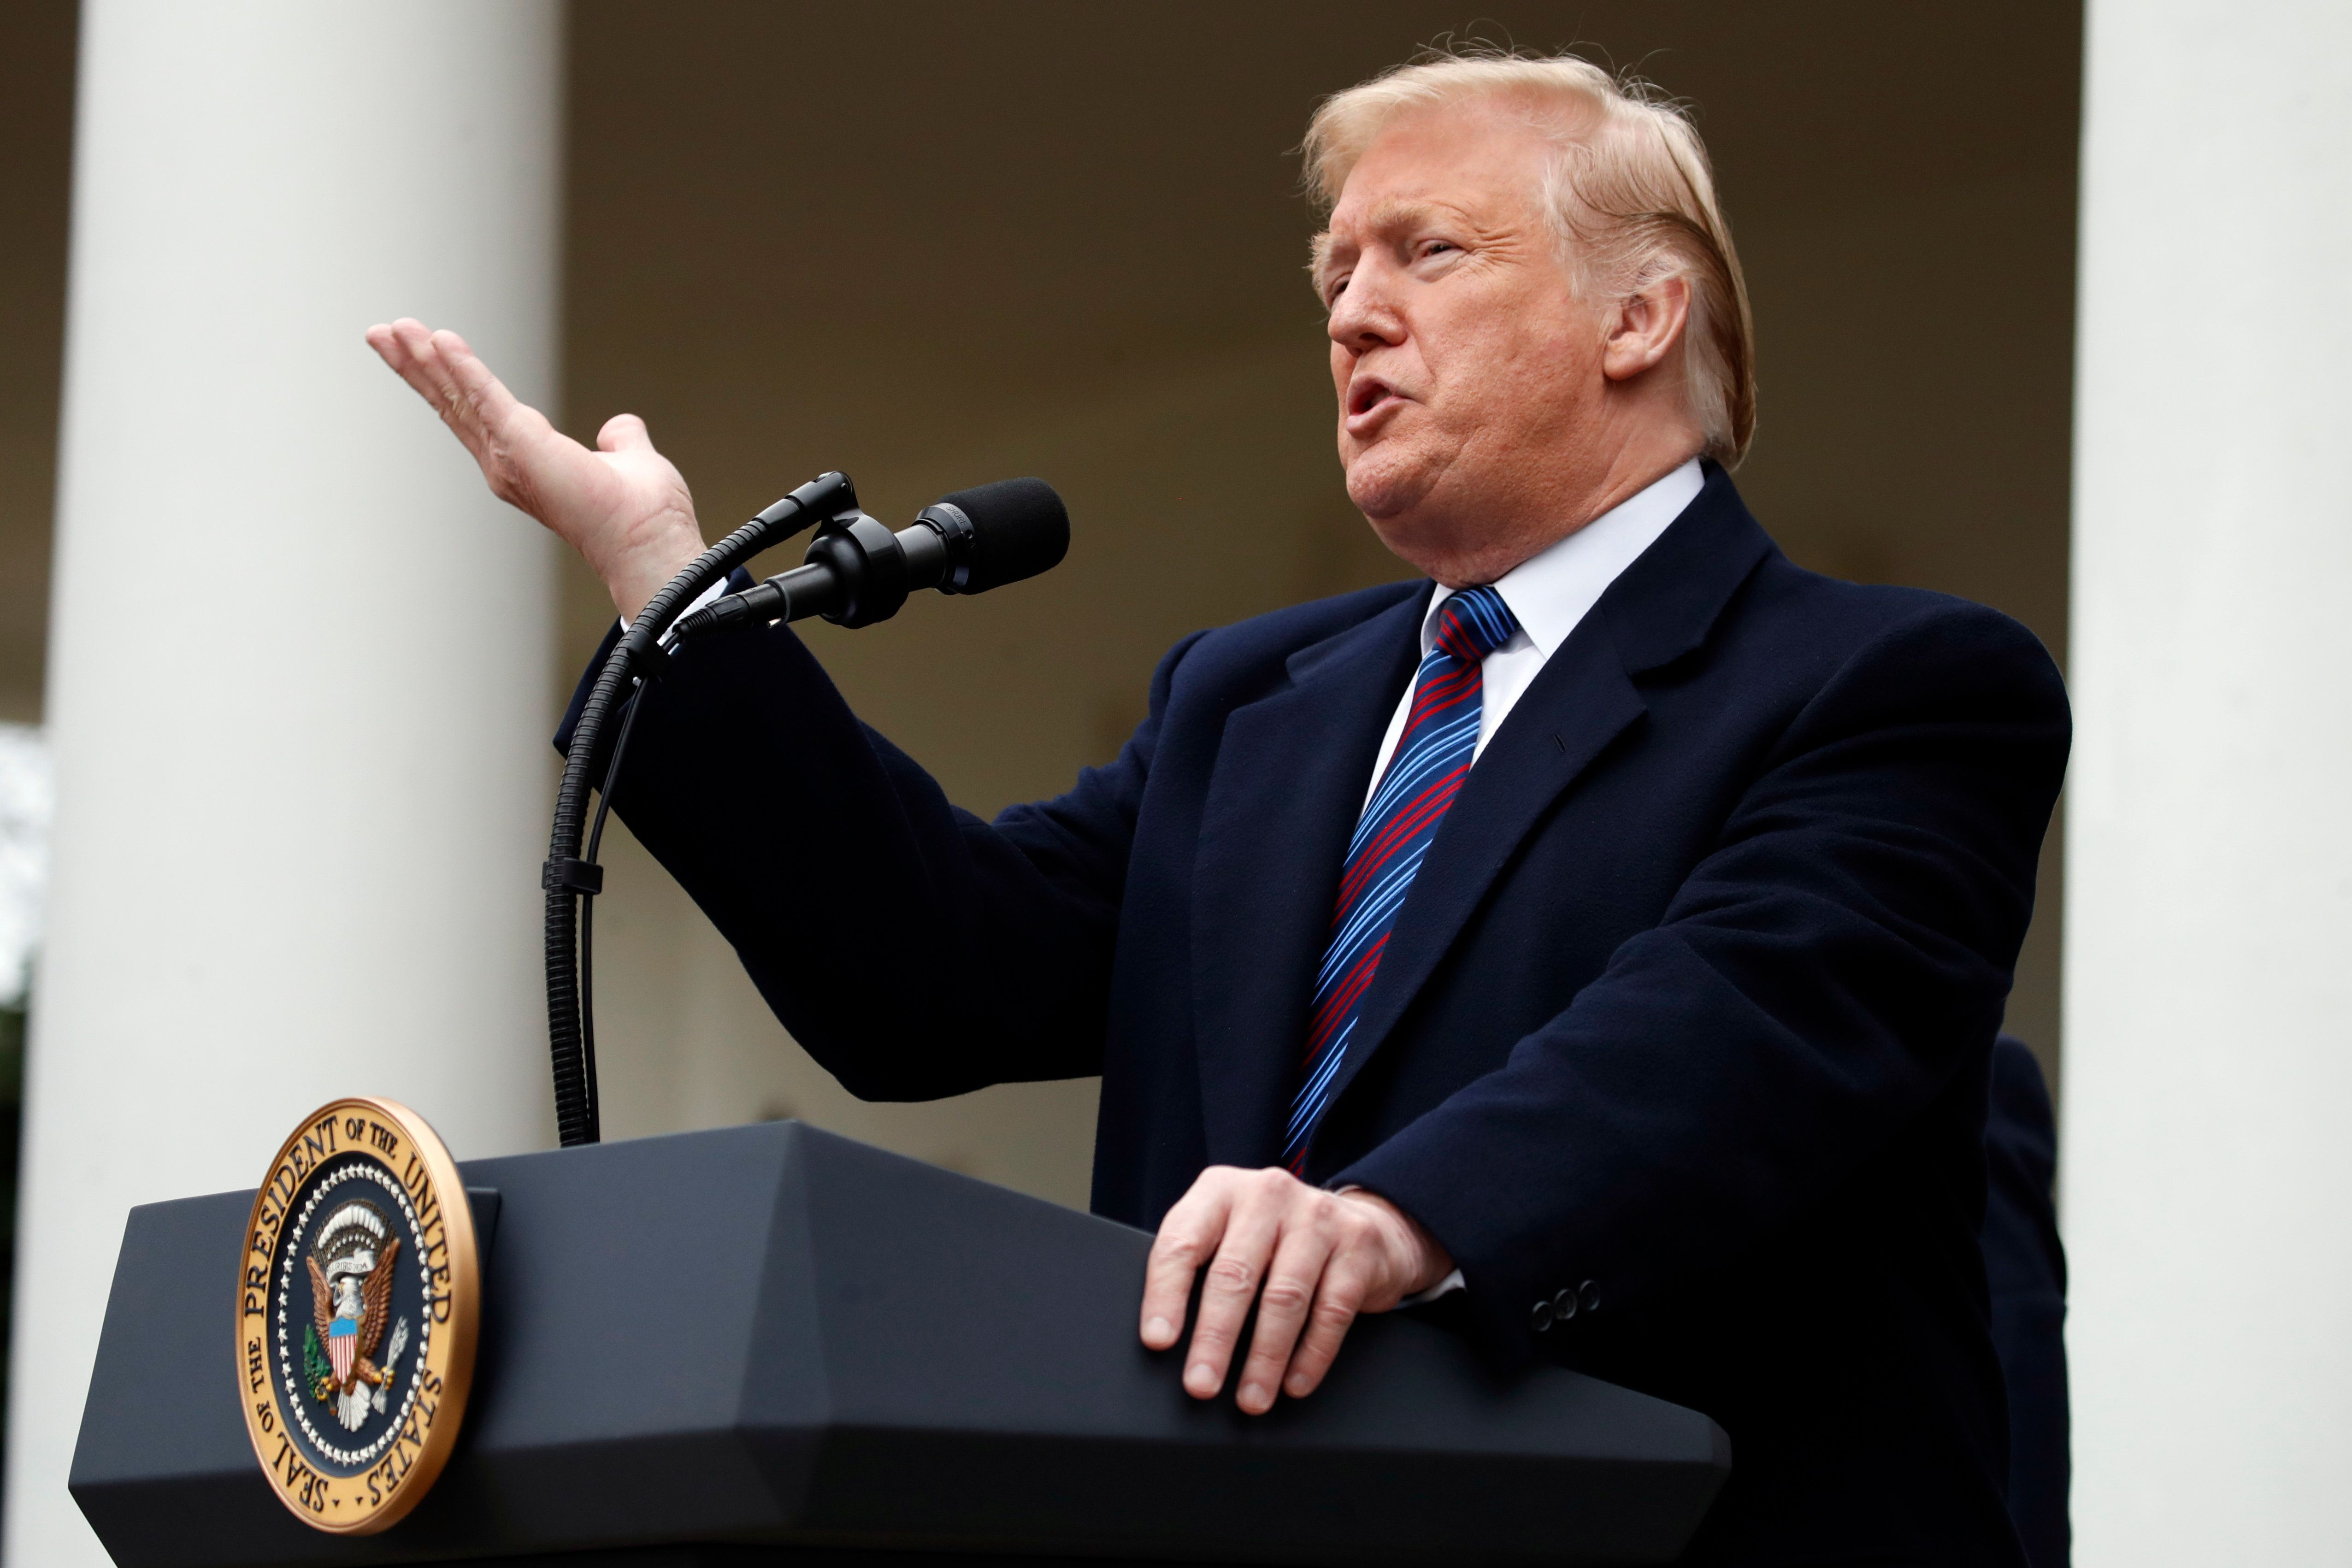 President Donald Trump speaks in the Rose Garden of the White House after a meeting with Congressional leaders on border security, Friday, Jan. 4, 2019, at the White House in Washington. (AP Photo/Jacquelyn Martin)